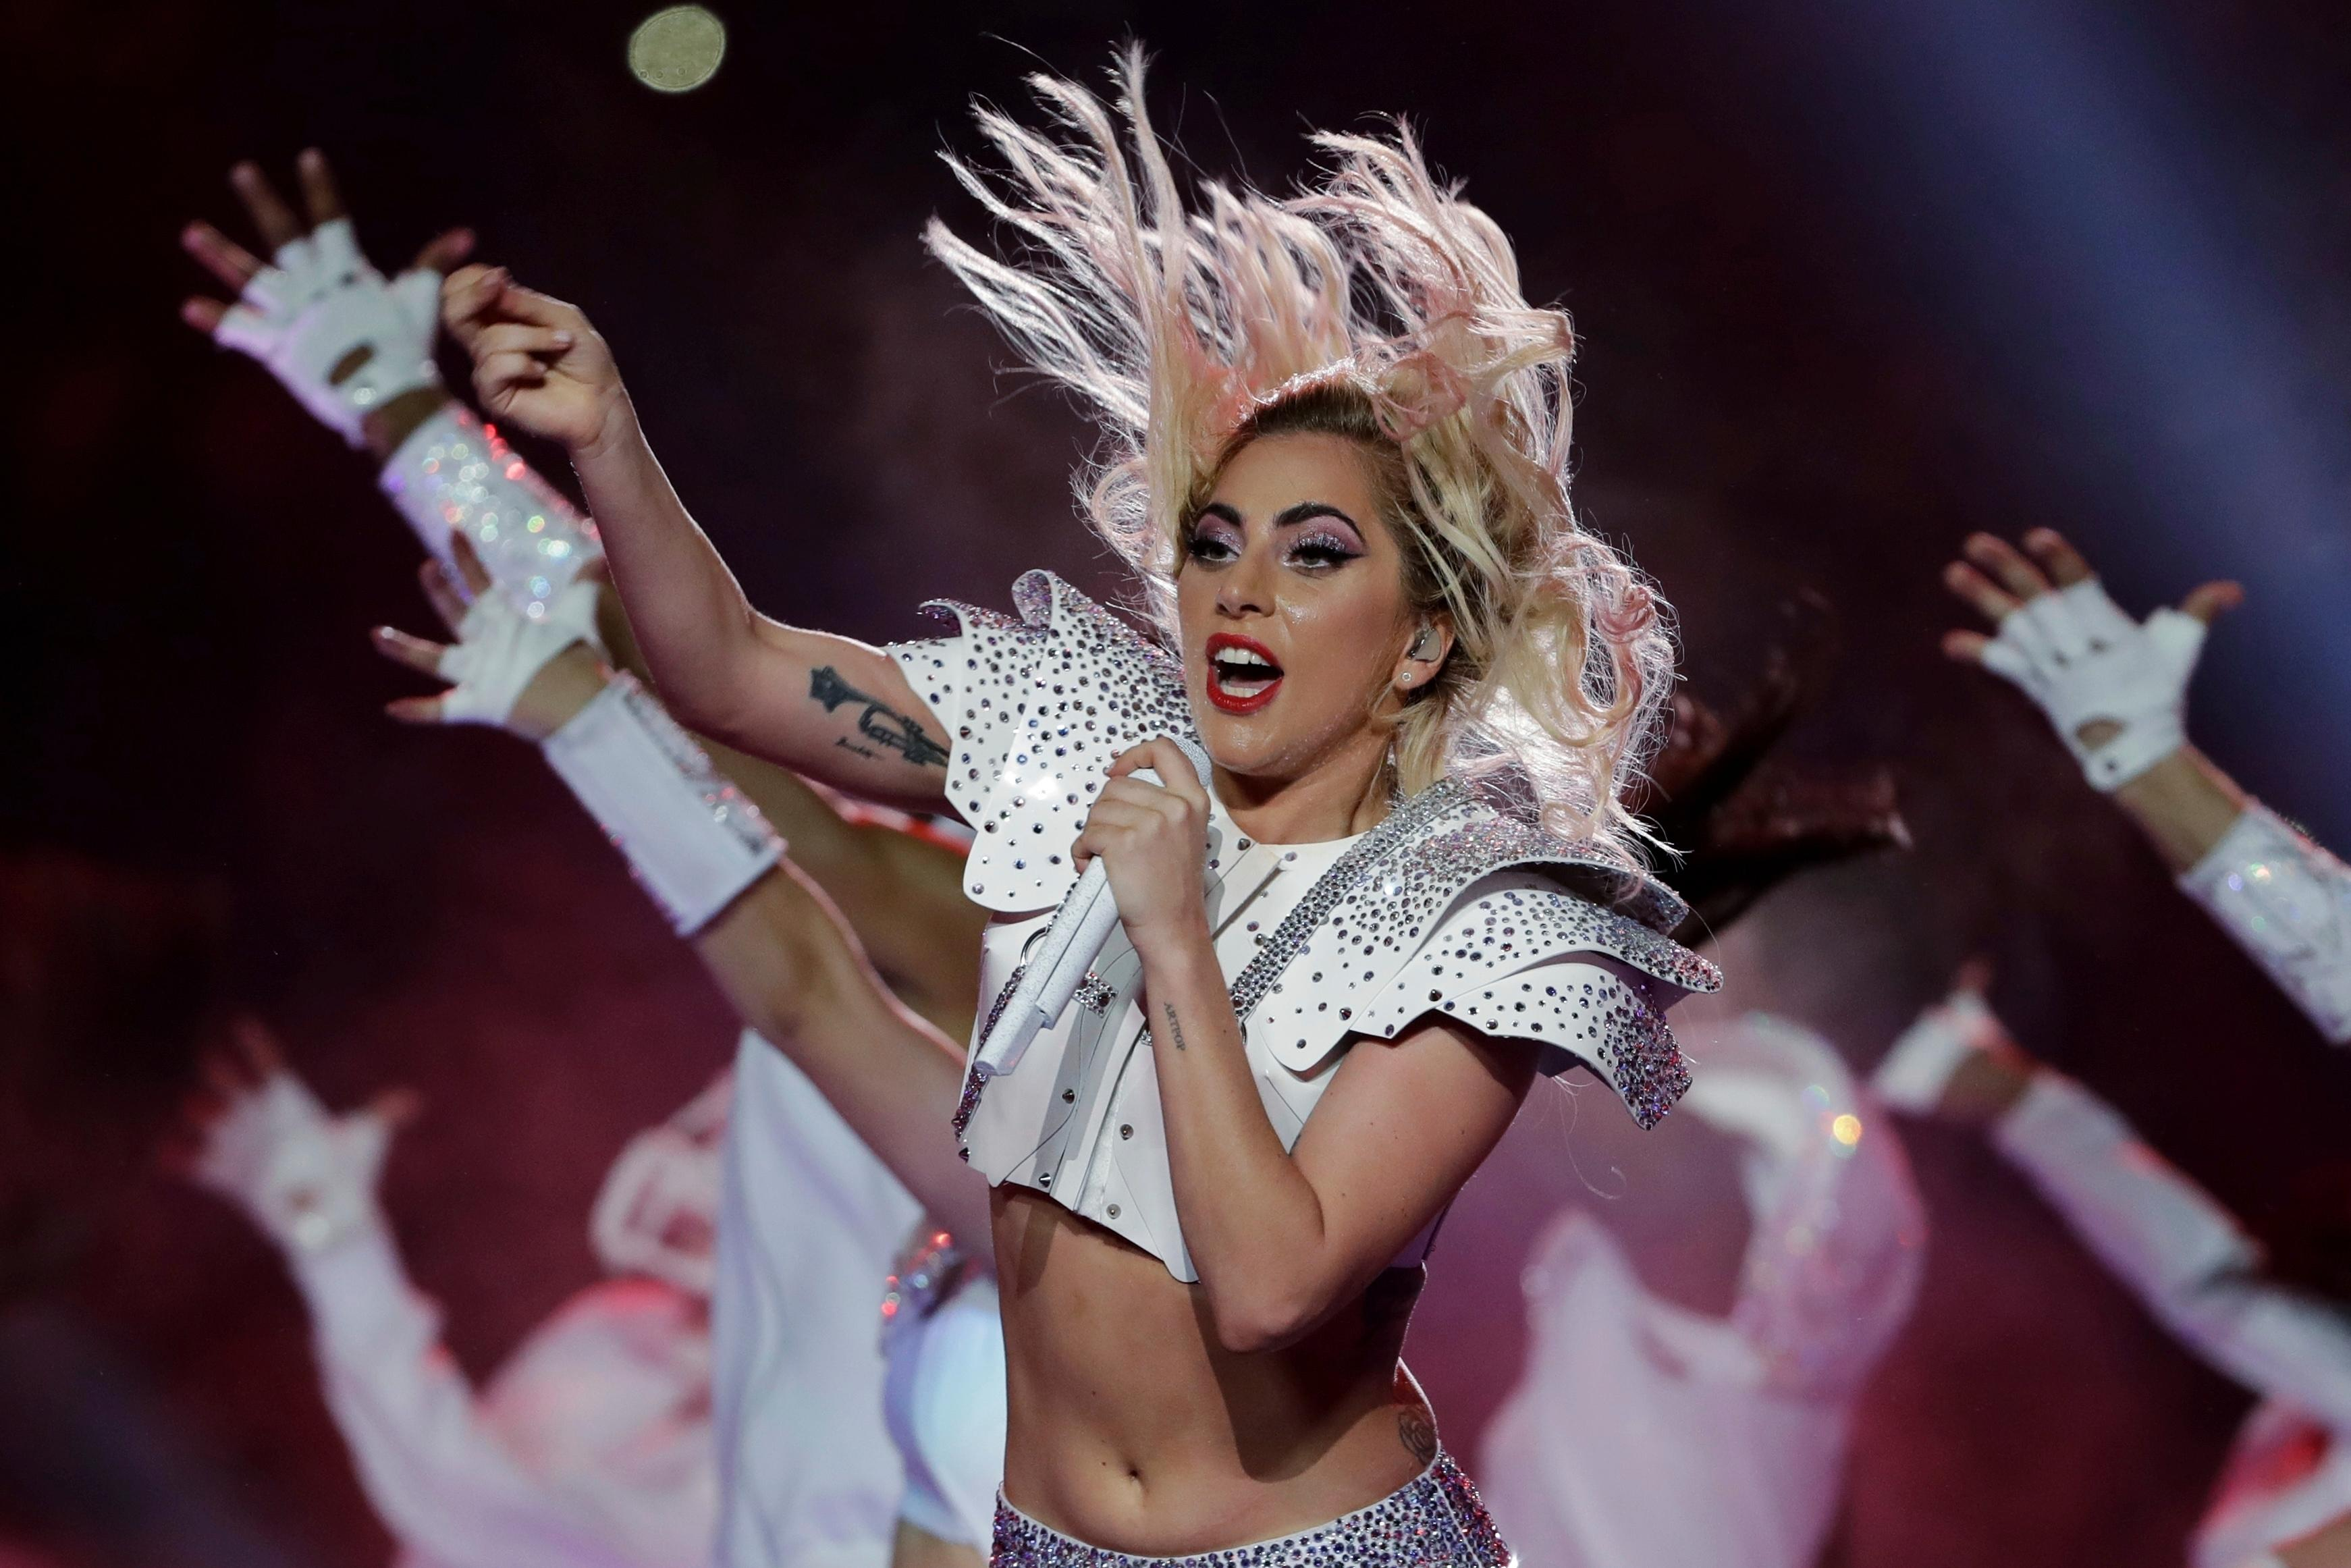 FILE - In this Feb. 5, 2017, file photo, Lady Gaga performs during the halftime show of the NFL Super Bowl 51 football game between the New England Patriots and the Atlanta Falcons in Houston. Starbucks announced June 12, 2017, that it's teaming with Gaga for a set of brightly colored summery drinks that will raise money for the singer's foundation. (AP Photo/Matt Slocum, File)